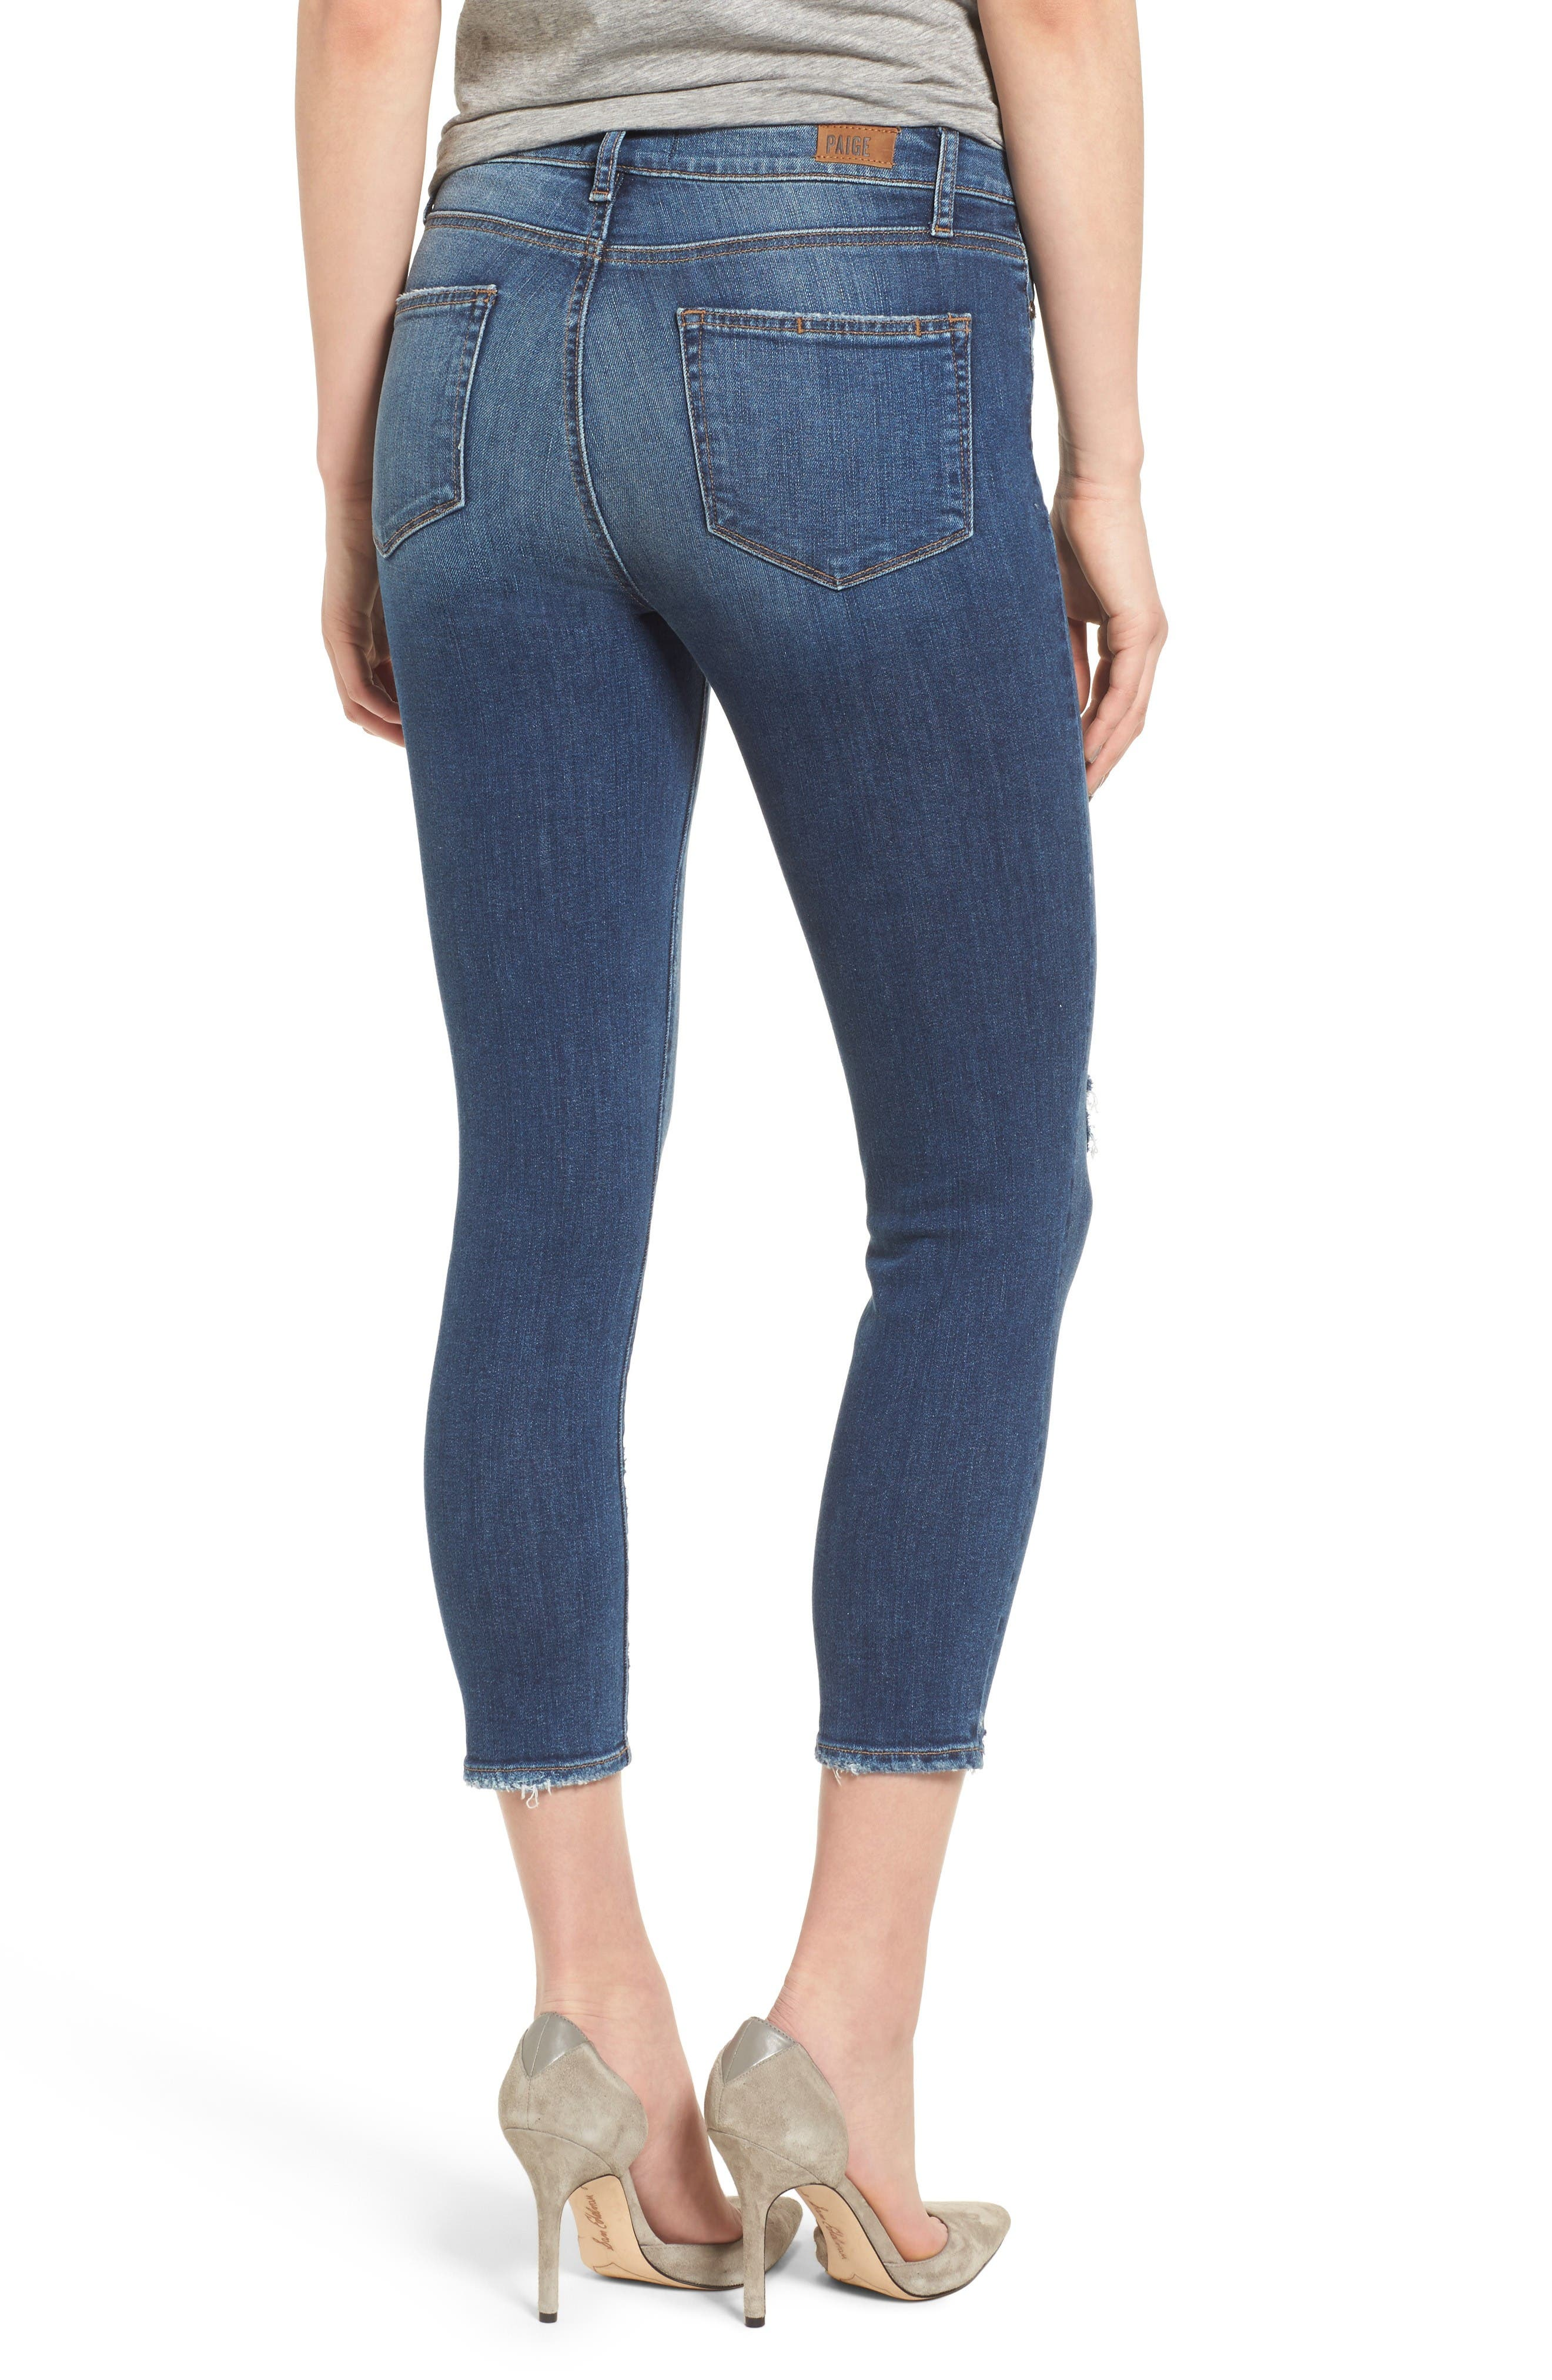 Transcend - Hoxton High Waist Crop Skinny Jeans,                             Alternate thumbnail 2, color,                             Nora Destructed